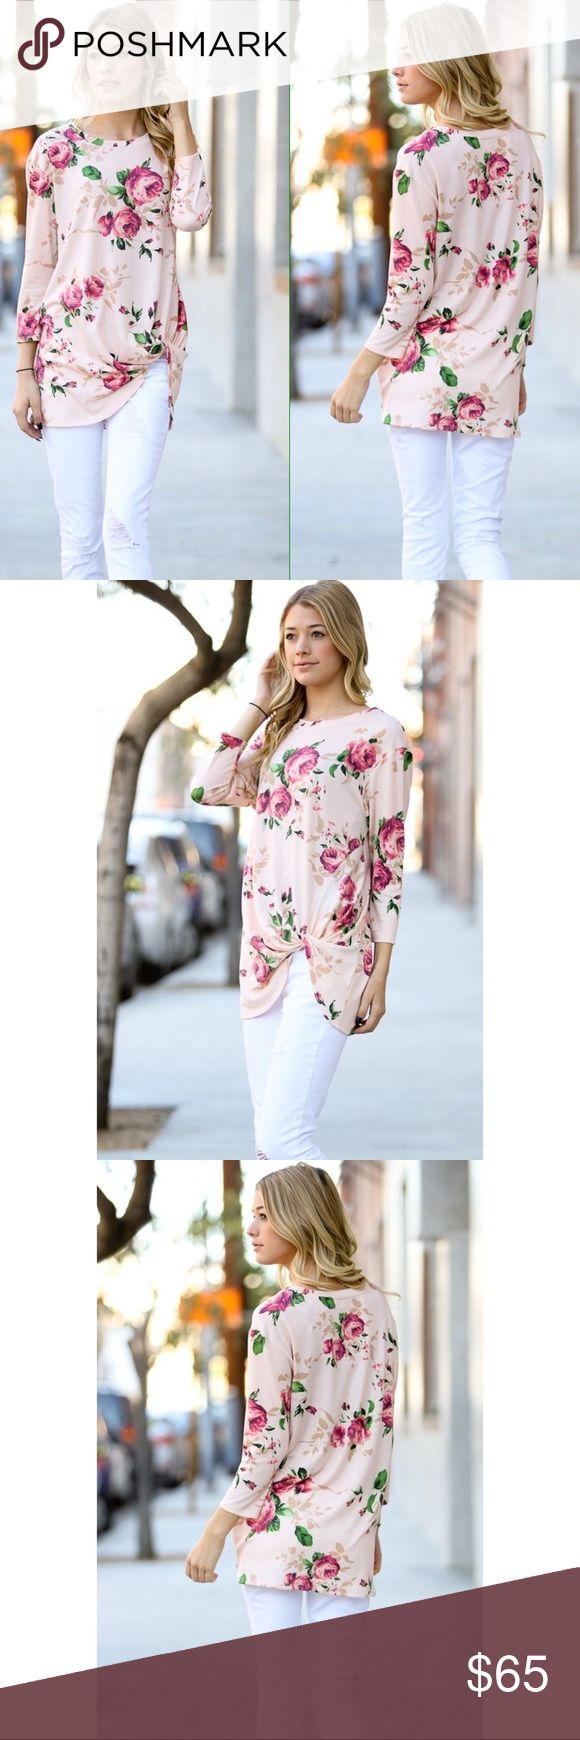 🌸🍃 Peach Floral Knot Tie Detail 3/4 Tunic Top 🌸 Arriving soon 🌸  🇺🇸 MADE IN USA  💗 Floral Tunic Top with knot detail 💗 Color may slightly vary according to device color calibration and lighting (indoor/outdoor/time of day) 💗 Polyester/Spandex  Blend 💗 Hand wash cold water, hang dry Tops